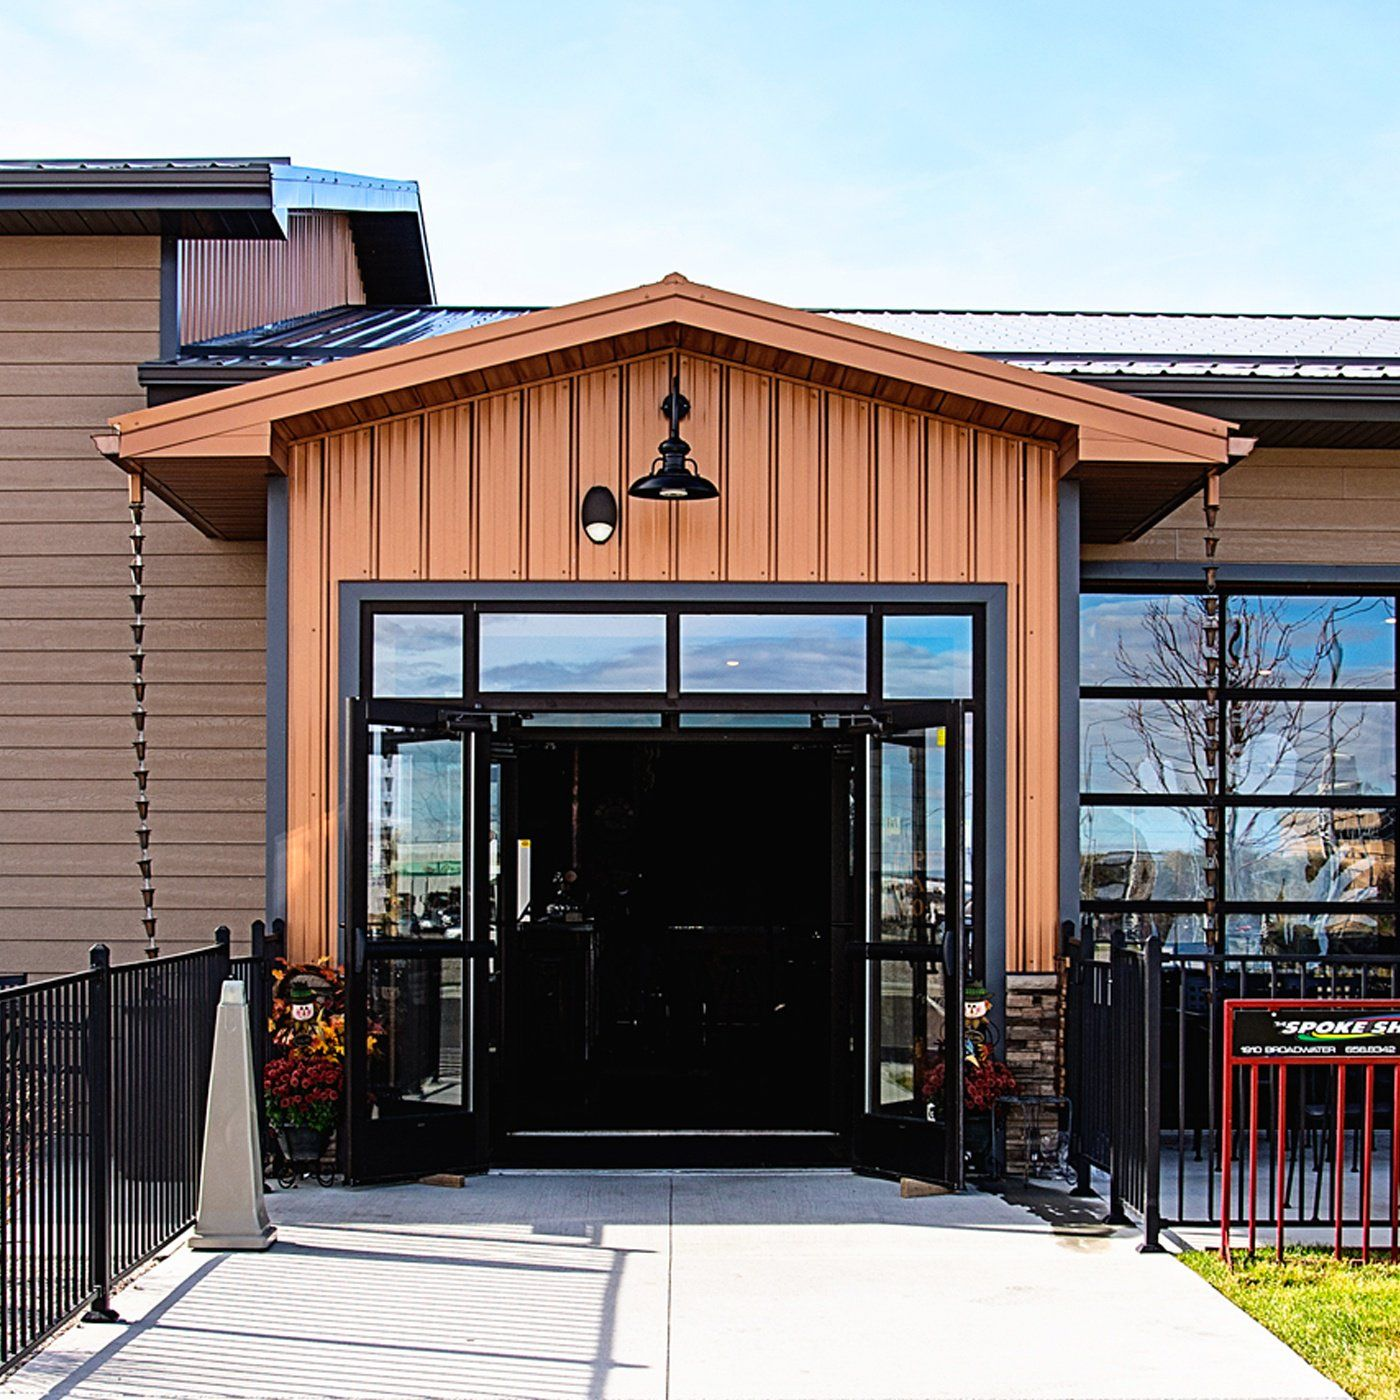 Metal Siding Panels For Exterior And Interior Walls By Bridger Steel Metal Siding Copper House House Exterior